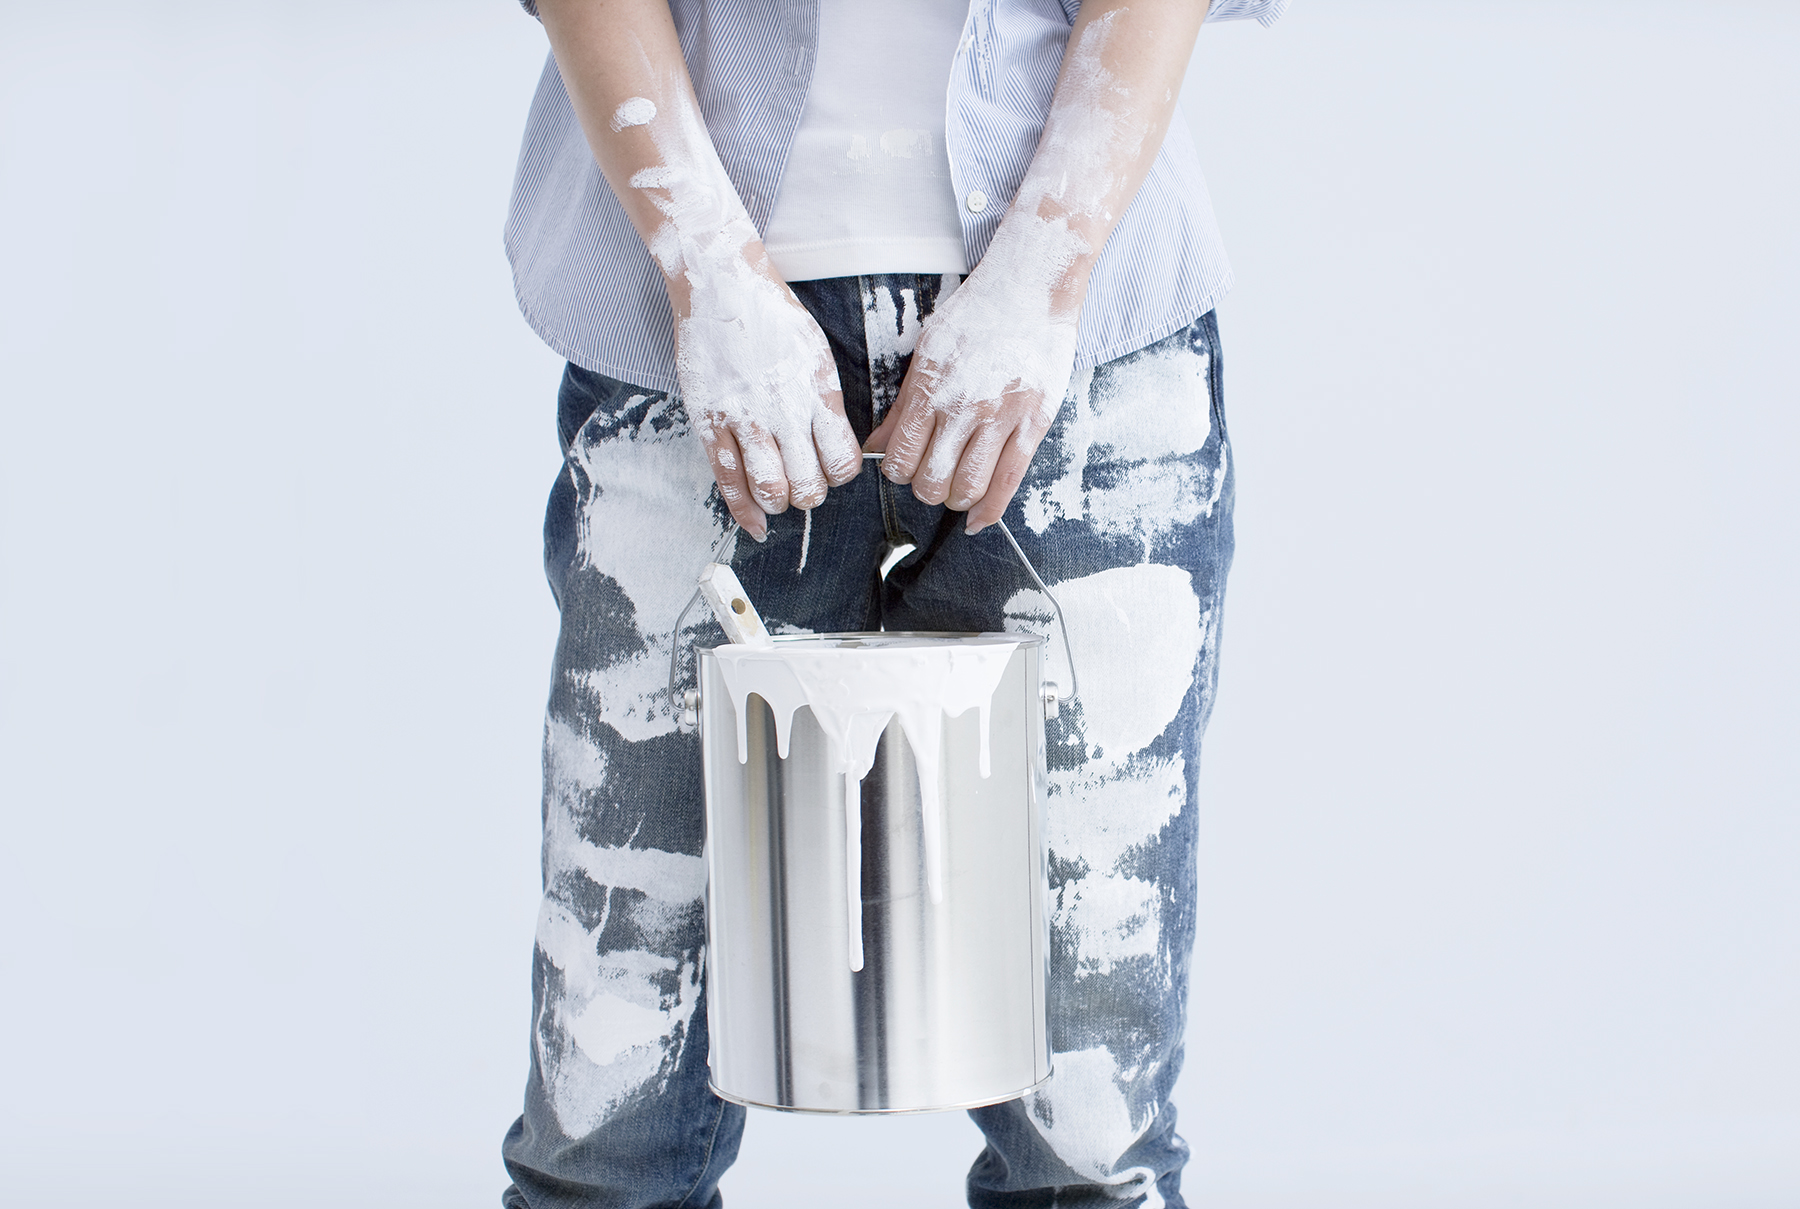 Woman covered in white paint